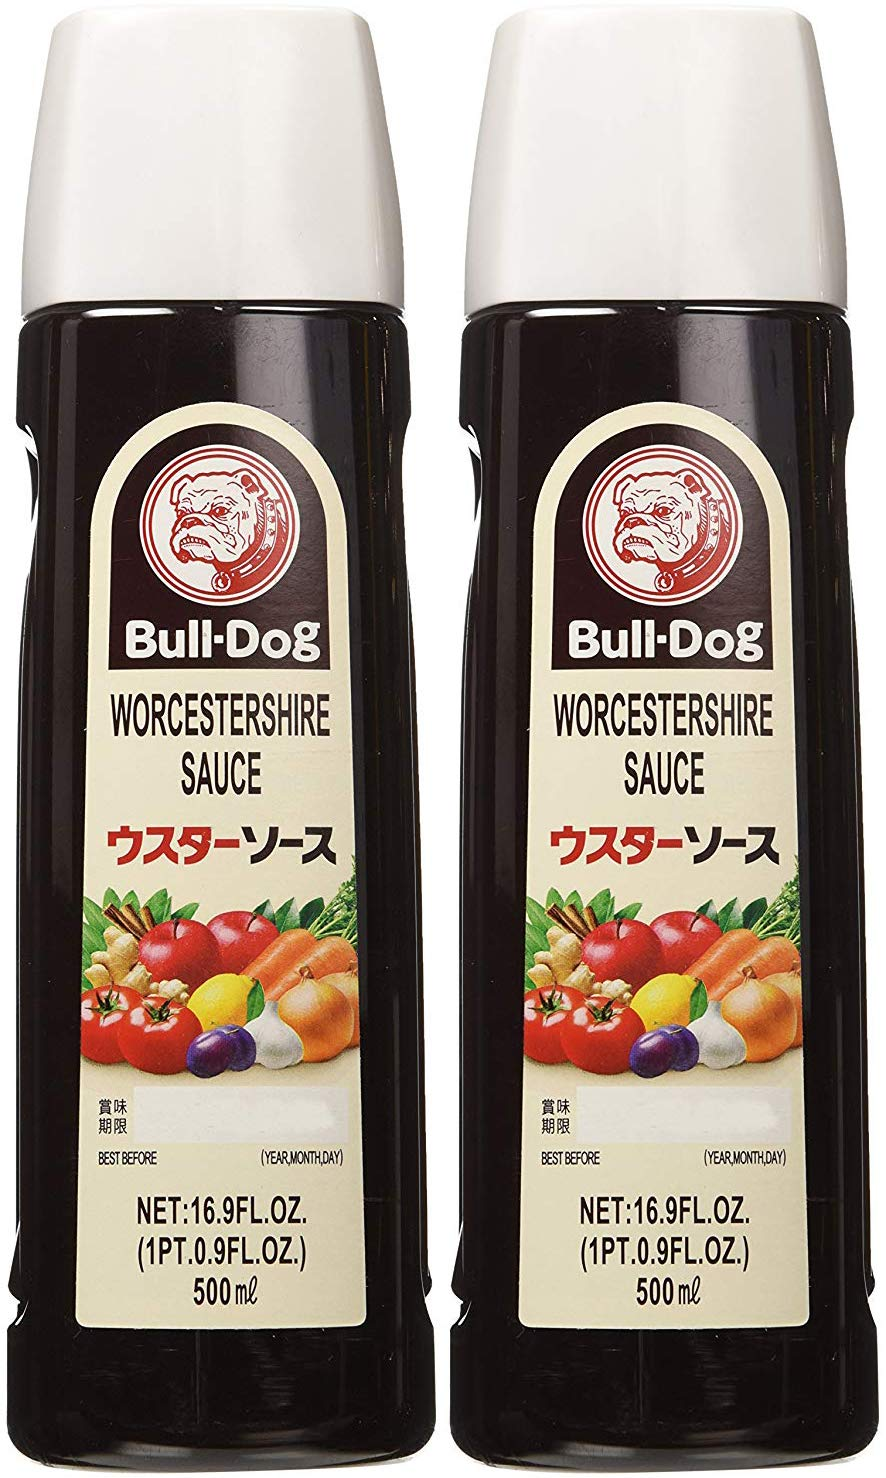 Bull-Dog Worcestershire Sauce 16.9 Fl. Oz. (2 Bottles) by Bull-Dog